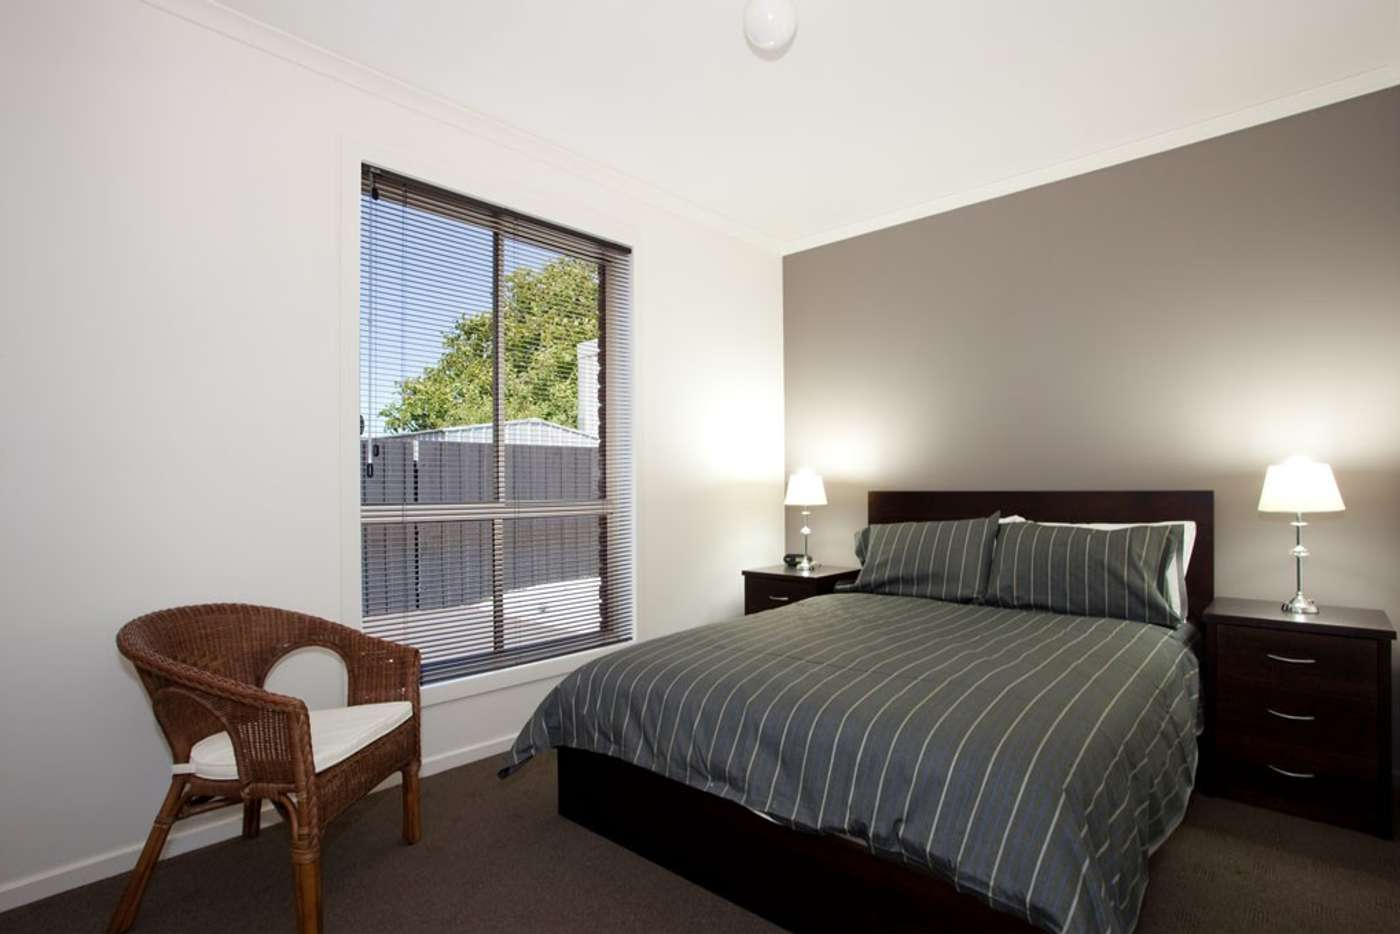 Sixth view of Homely unit listing, 2/9 Eddington Crescent, Invermay TAS 7248